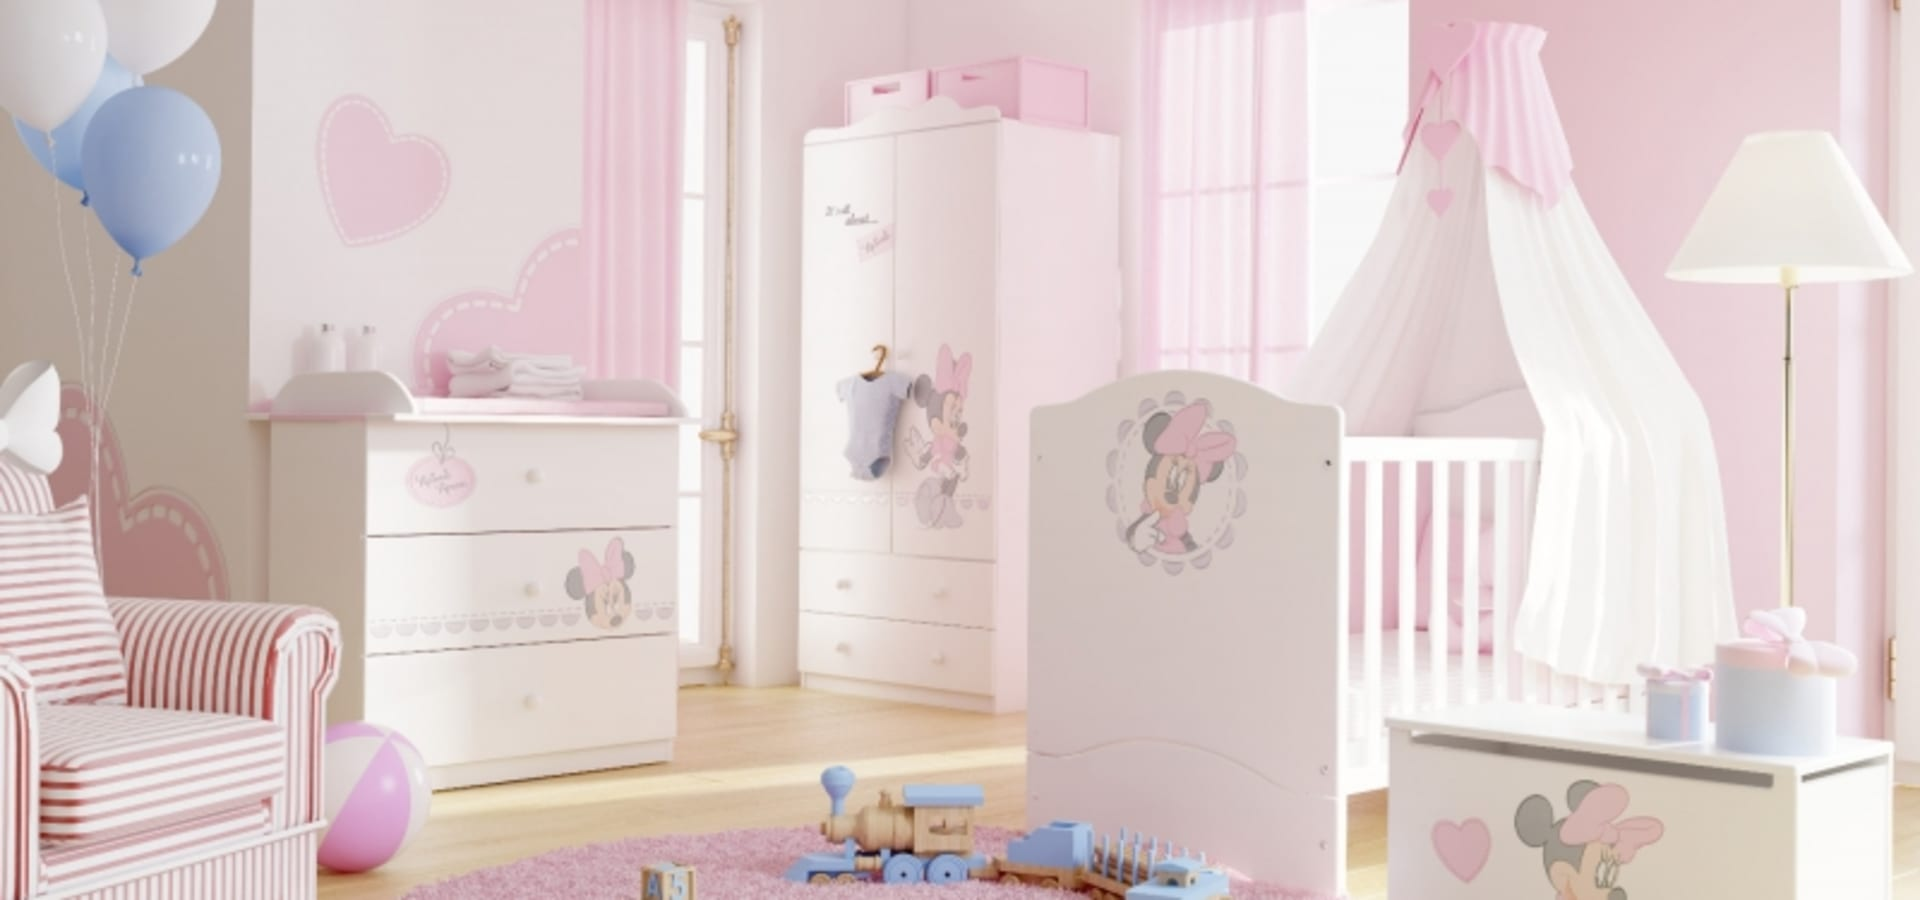 kinderm bel von m belgesch ft meblik homify. Black Bedroom Furniture Sets. Home Design Ideas